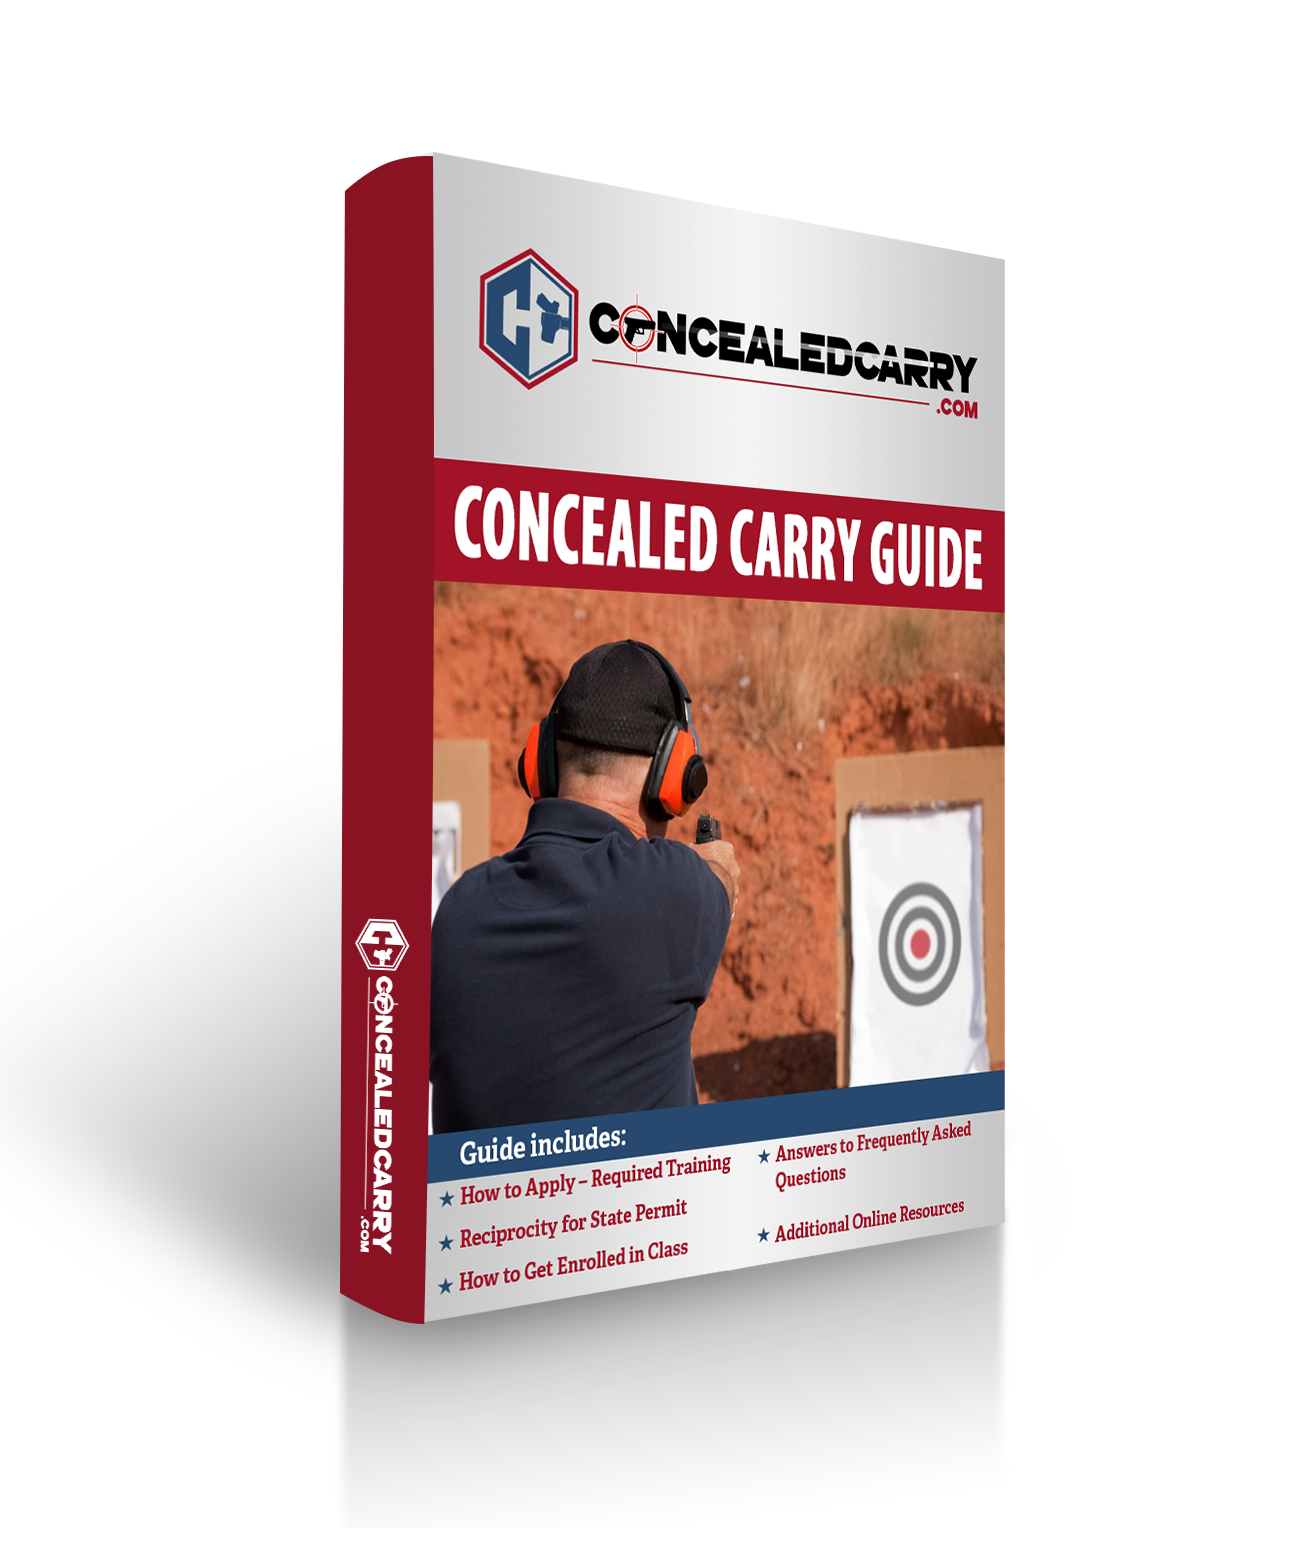 Florida Concealed Carry Classes And Resources